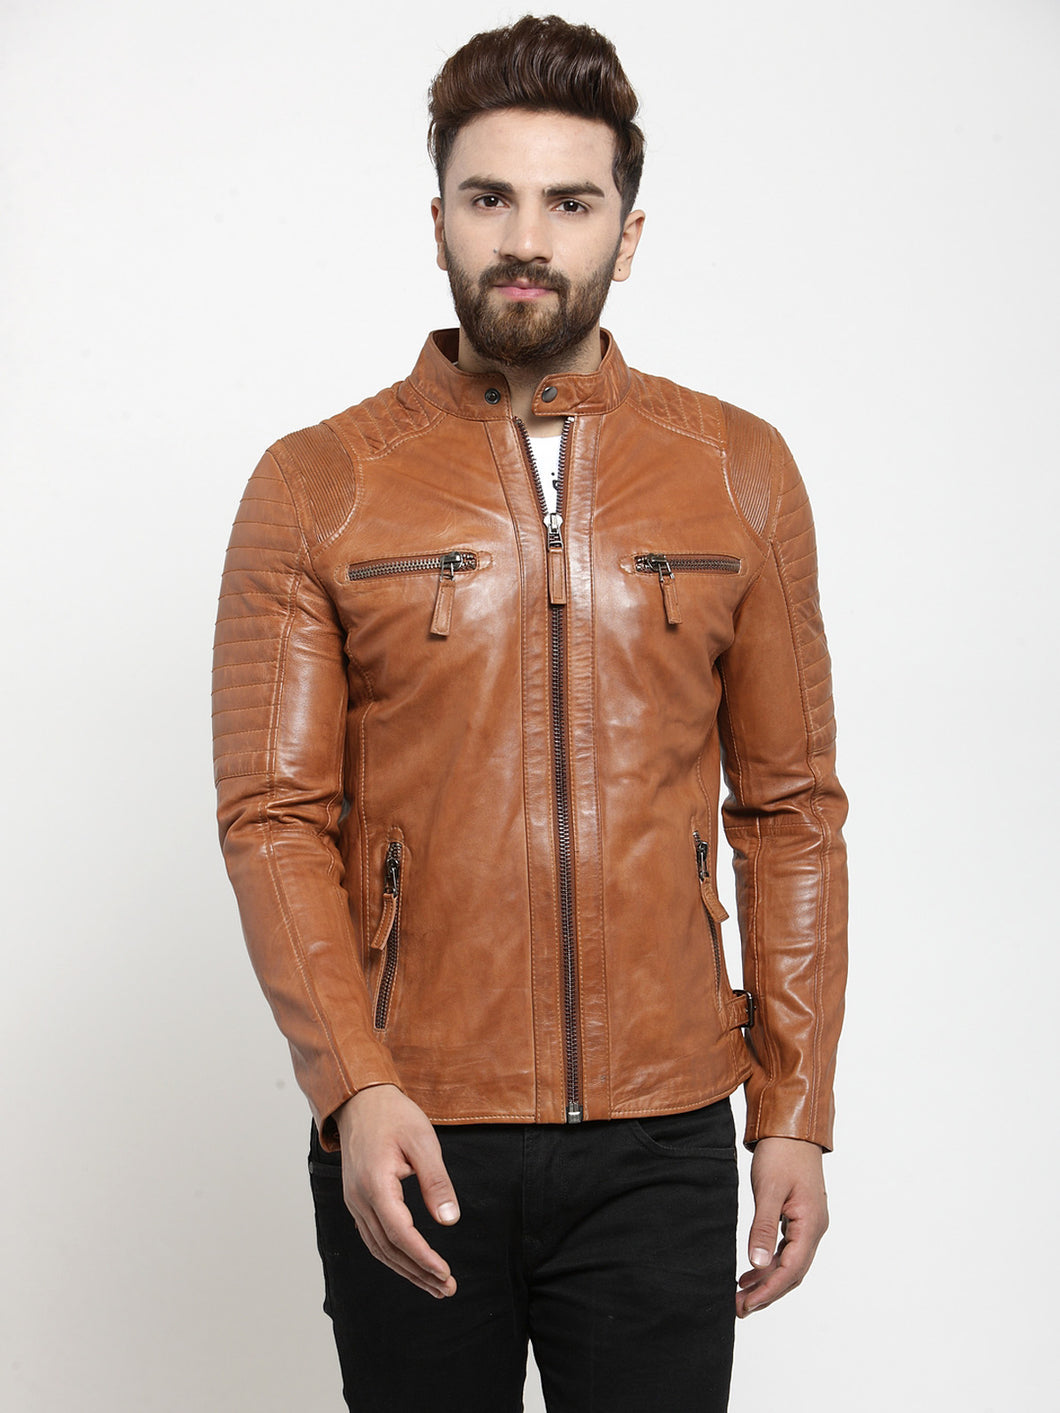 Teakwood Leathers Beige/Dark Mustard Men's 100% Genuine Leather Jacket